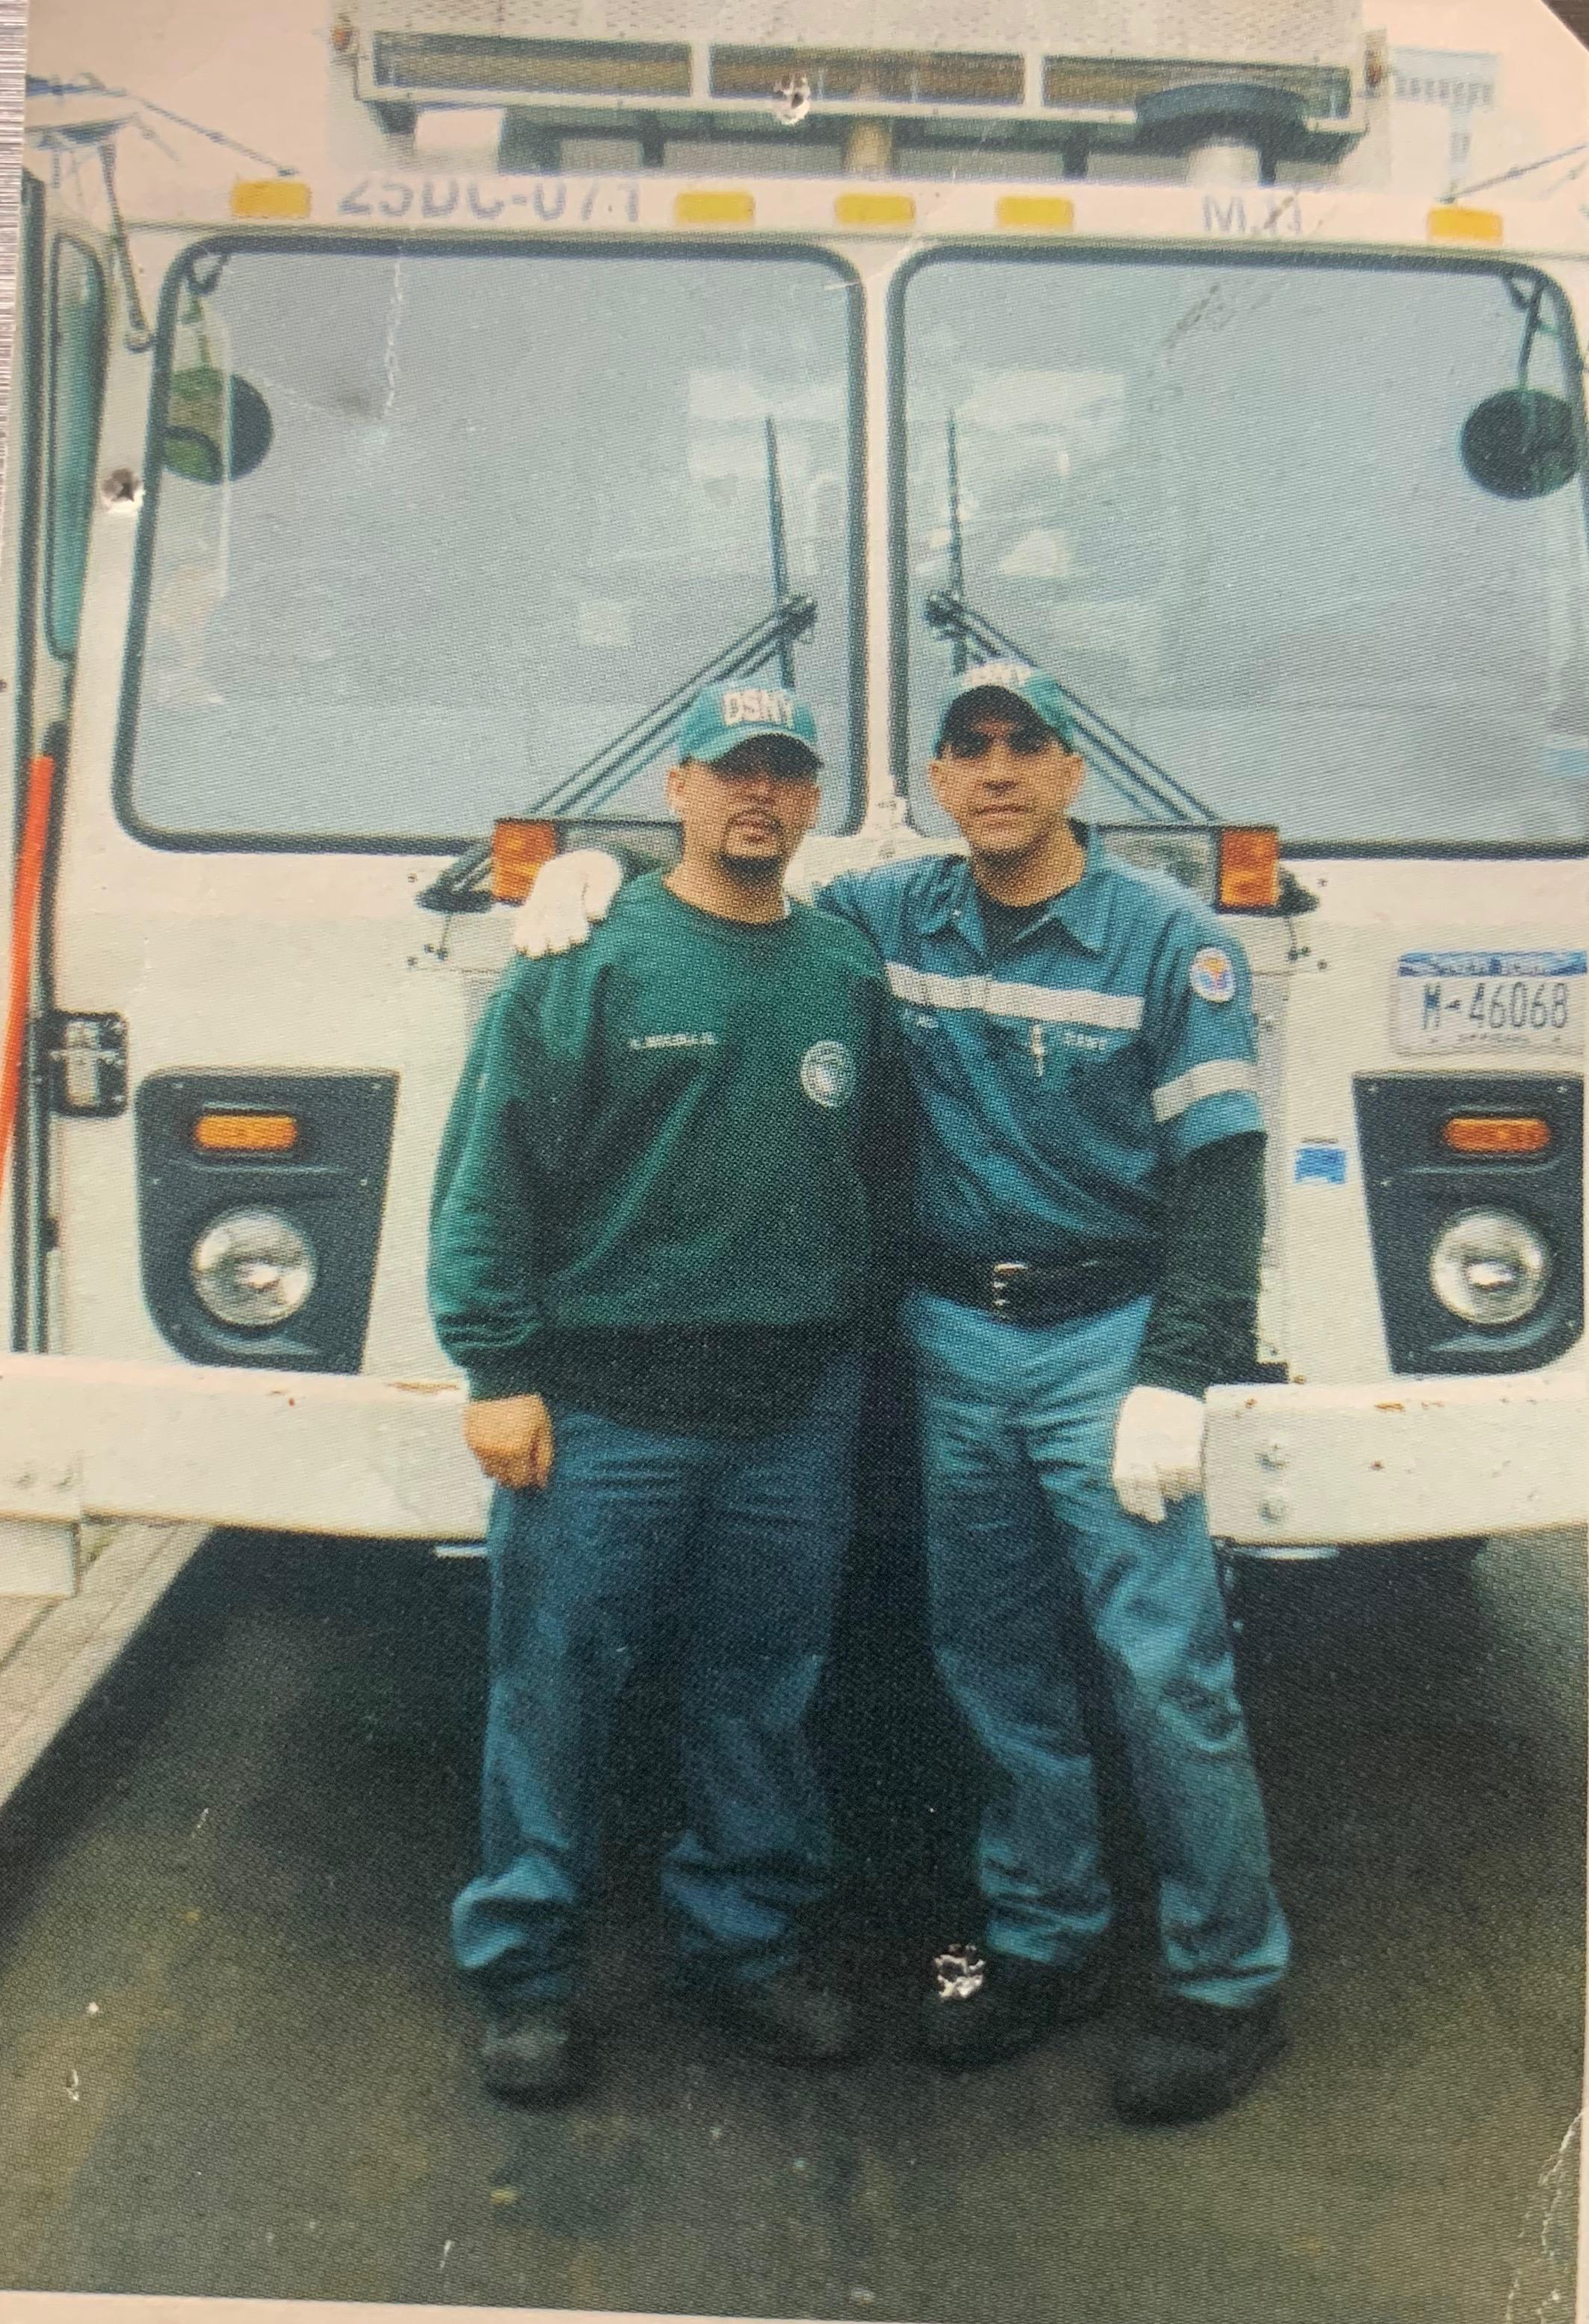 Nelson Molina and his son, Nelson Jr., who both work at New York City's Department of Sanitation. (Photo: Nelson Molina Jr.)